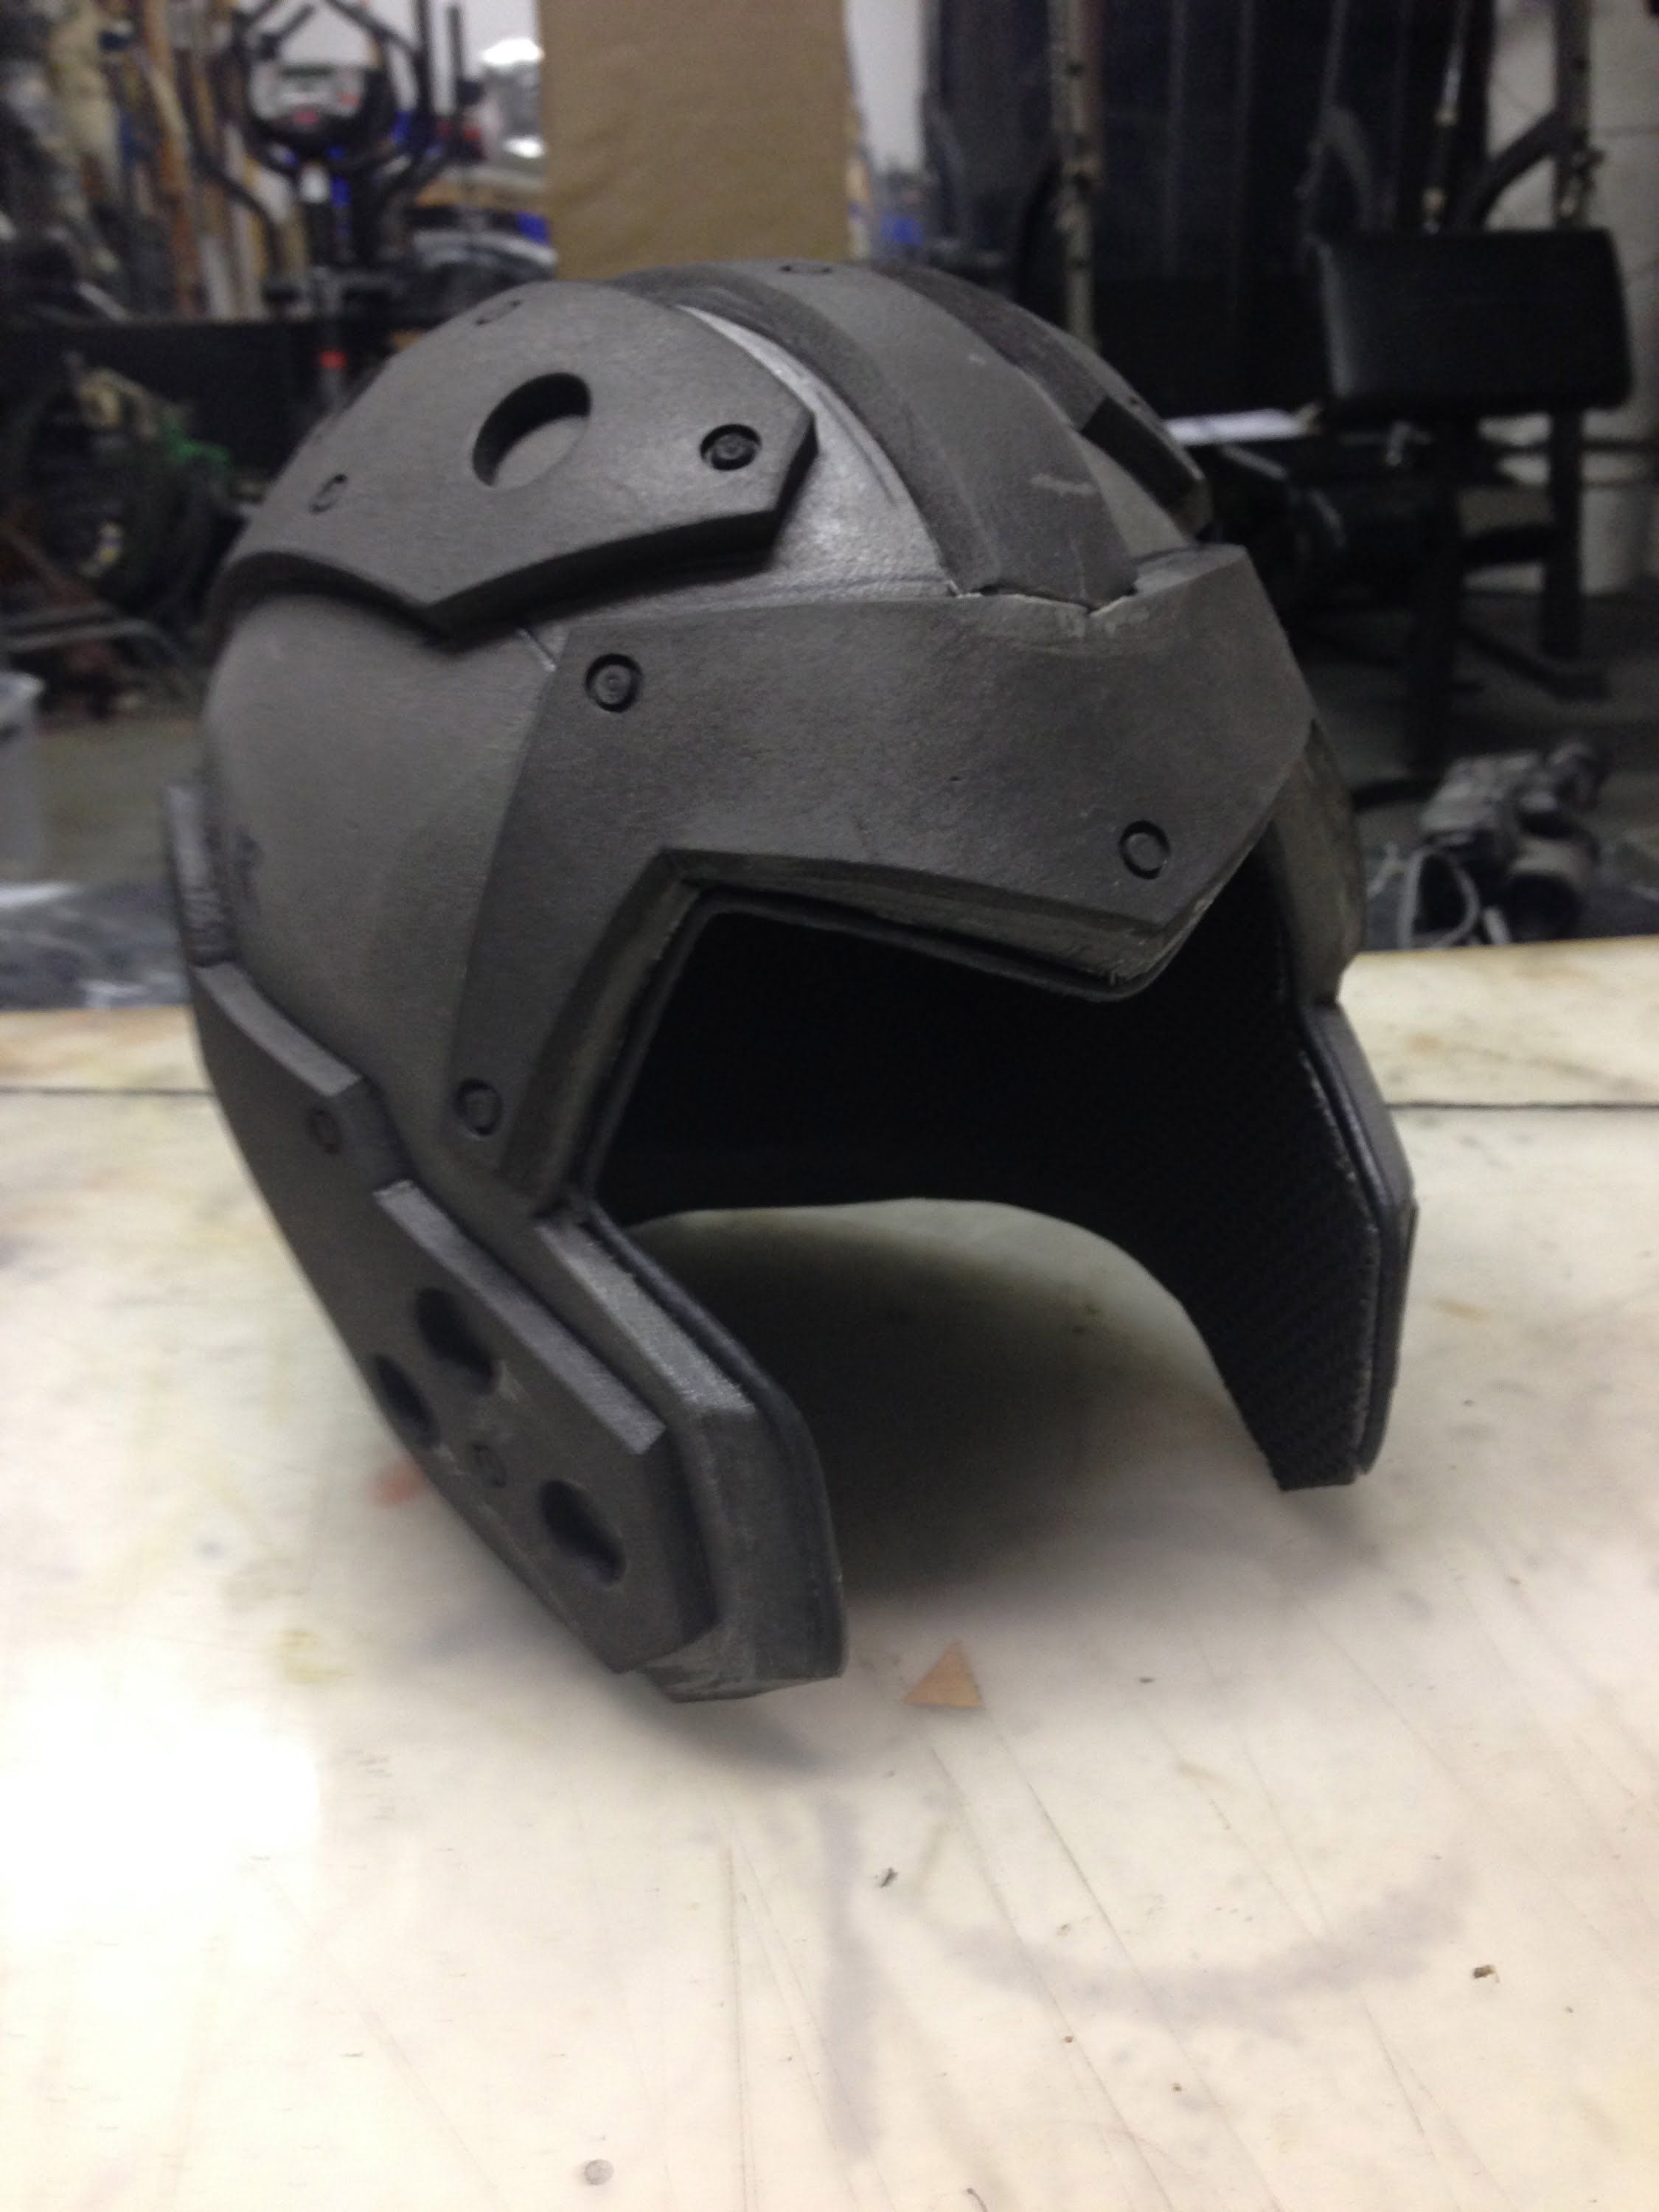 How To Make A Foam Helmet, Tutorial Part 3 Foam cosplay